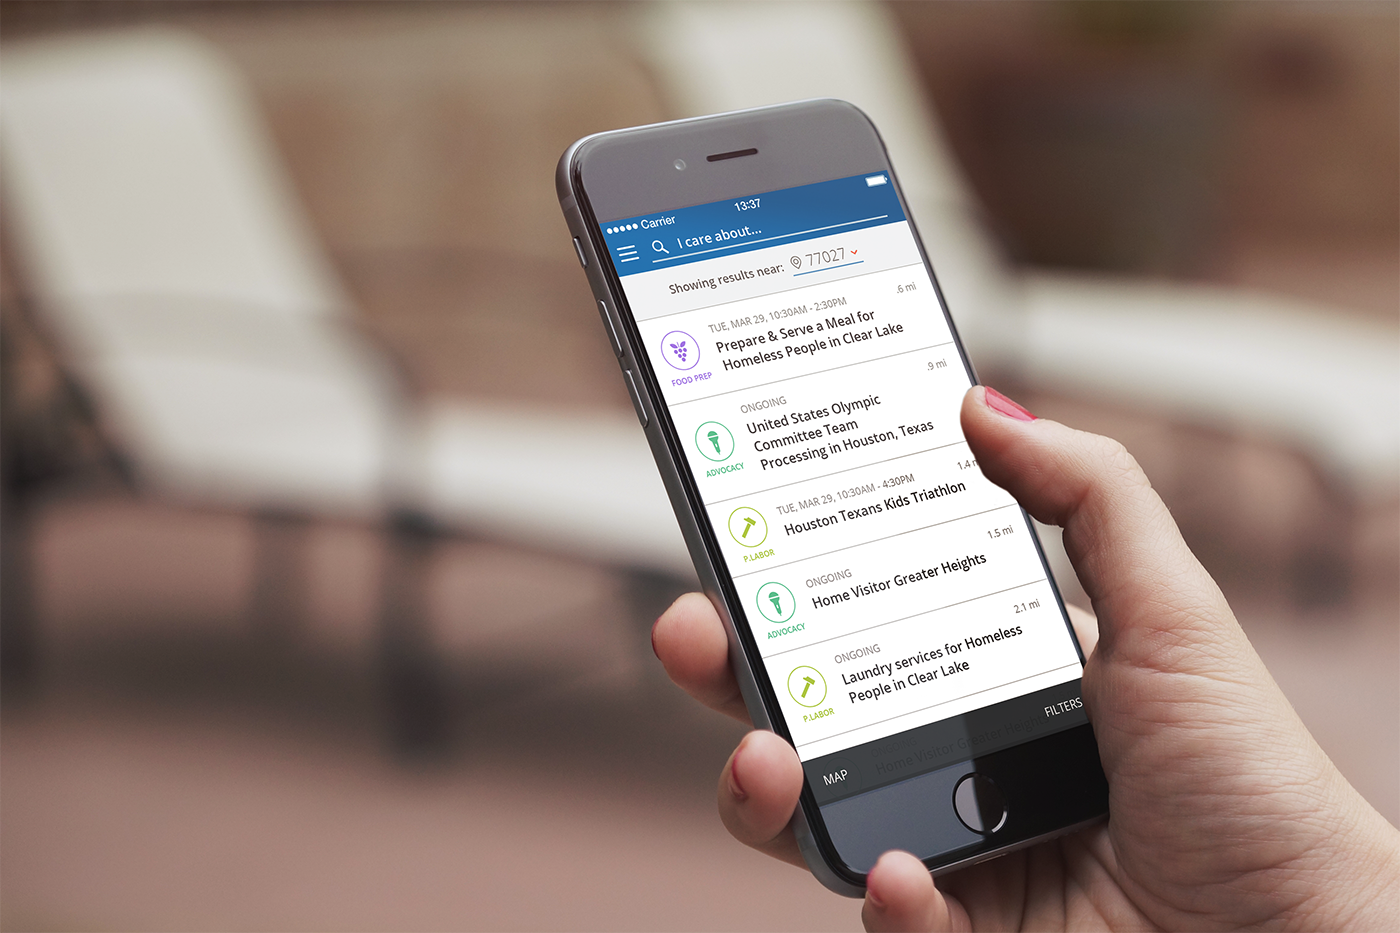 3 Mobile Apps That Can Help You Start Volunteering From The Home